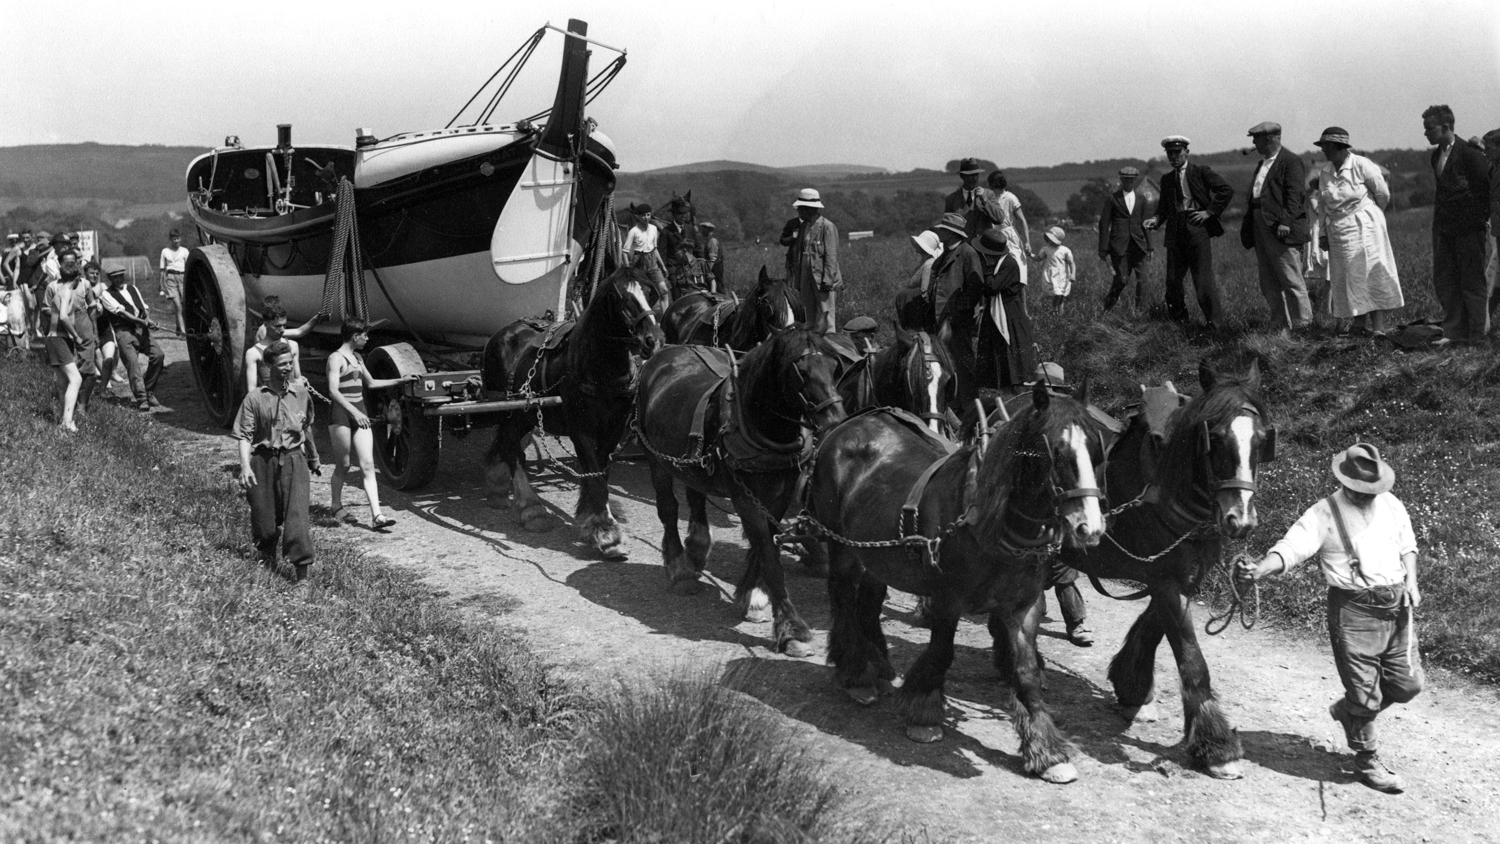 Horses pull the lifeboat at Brooke, Isle of Wight